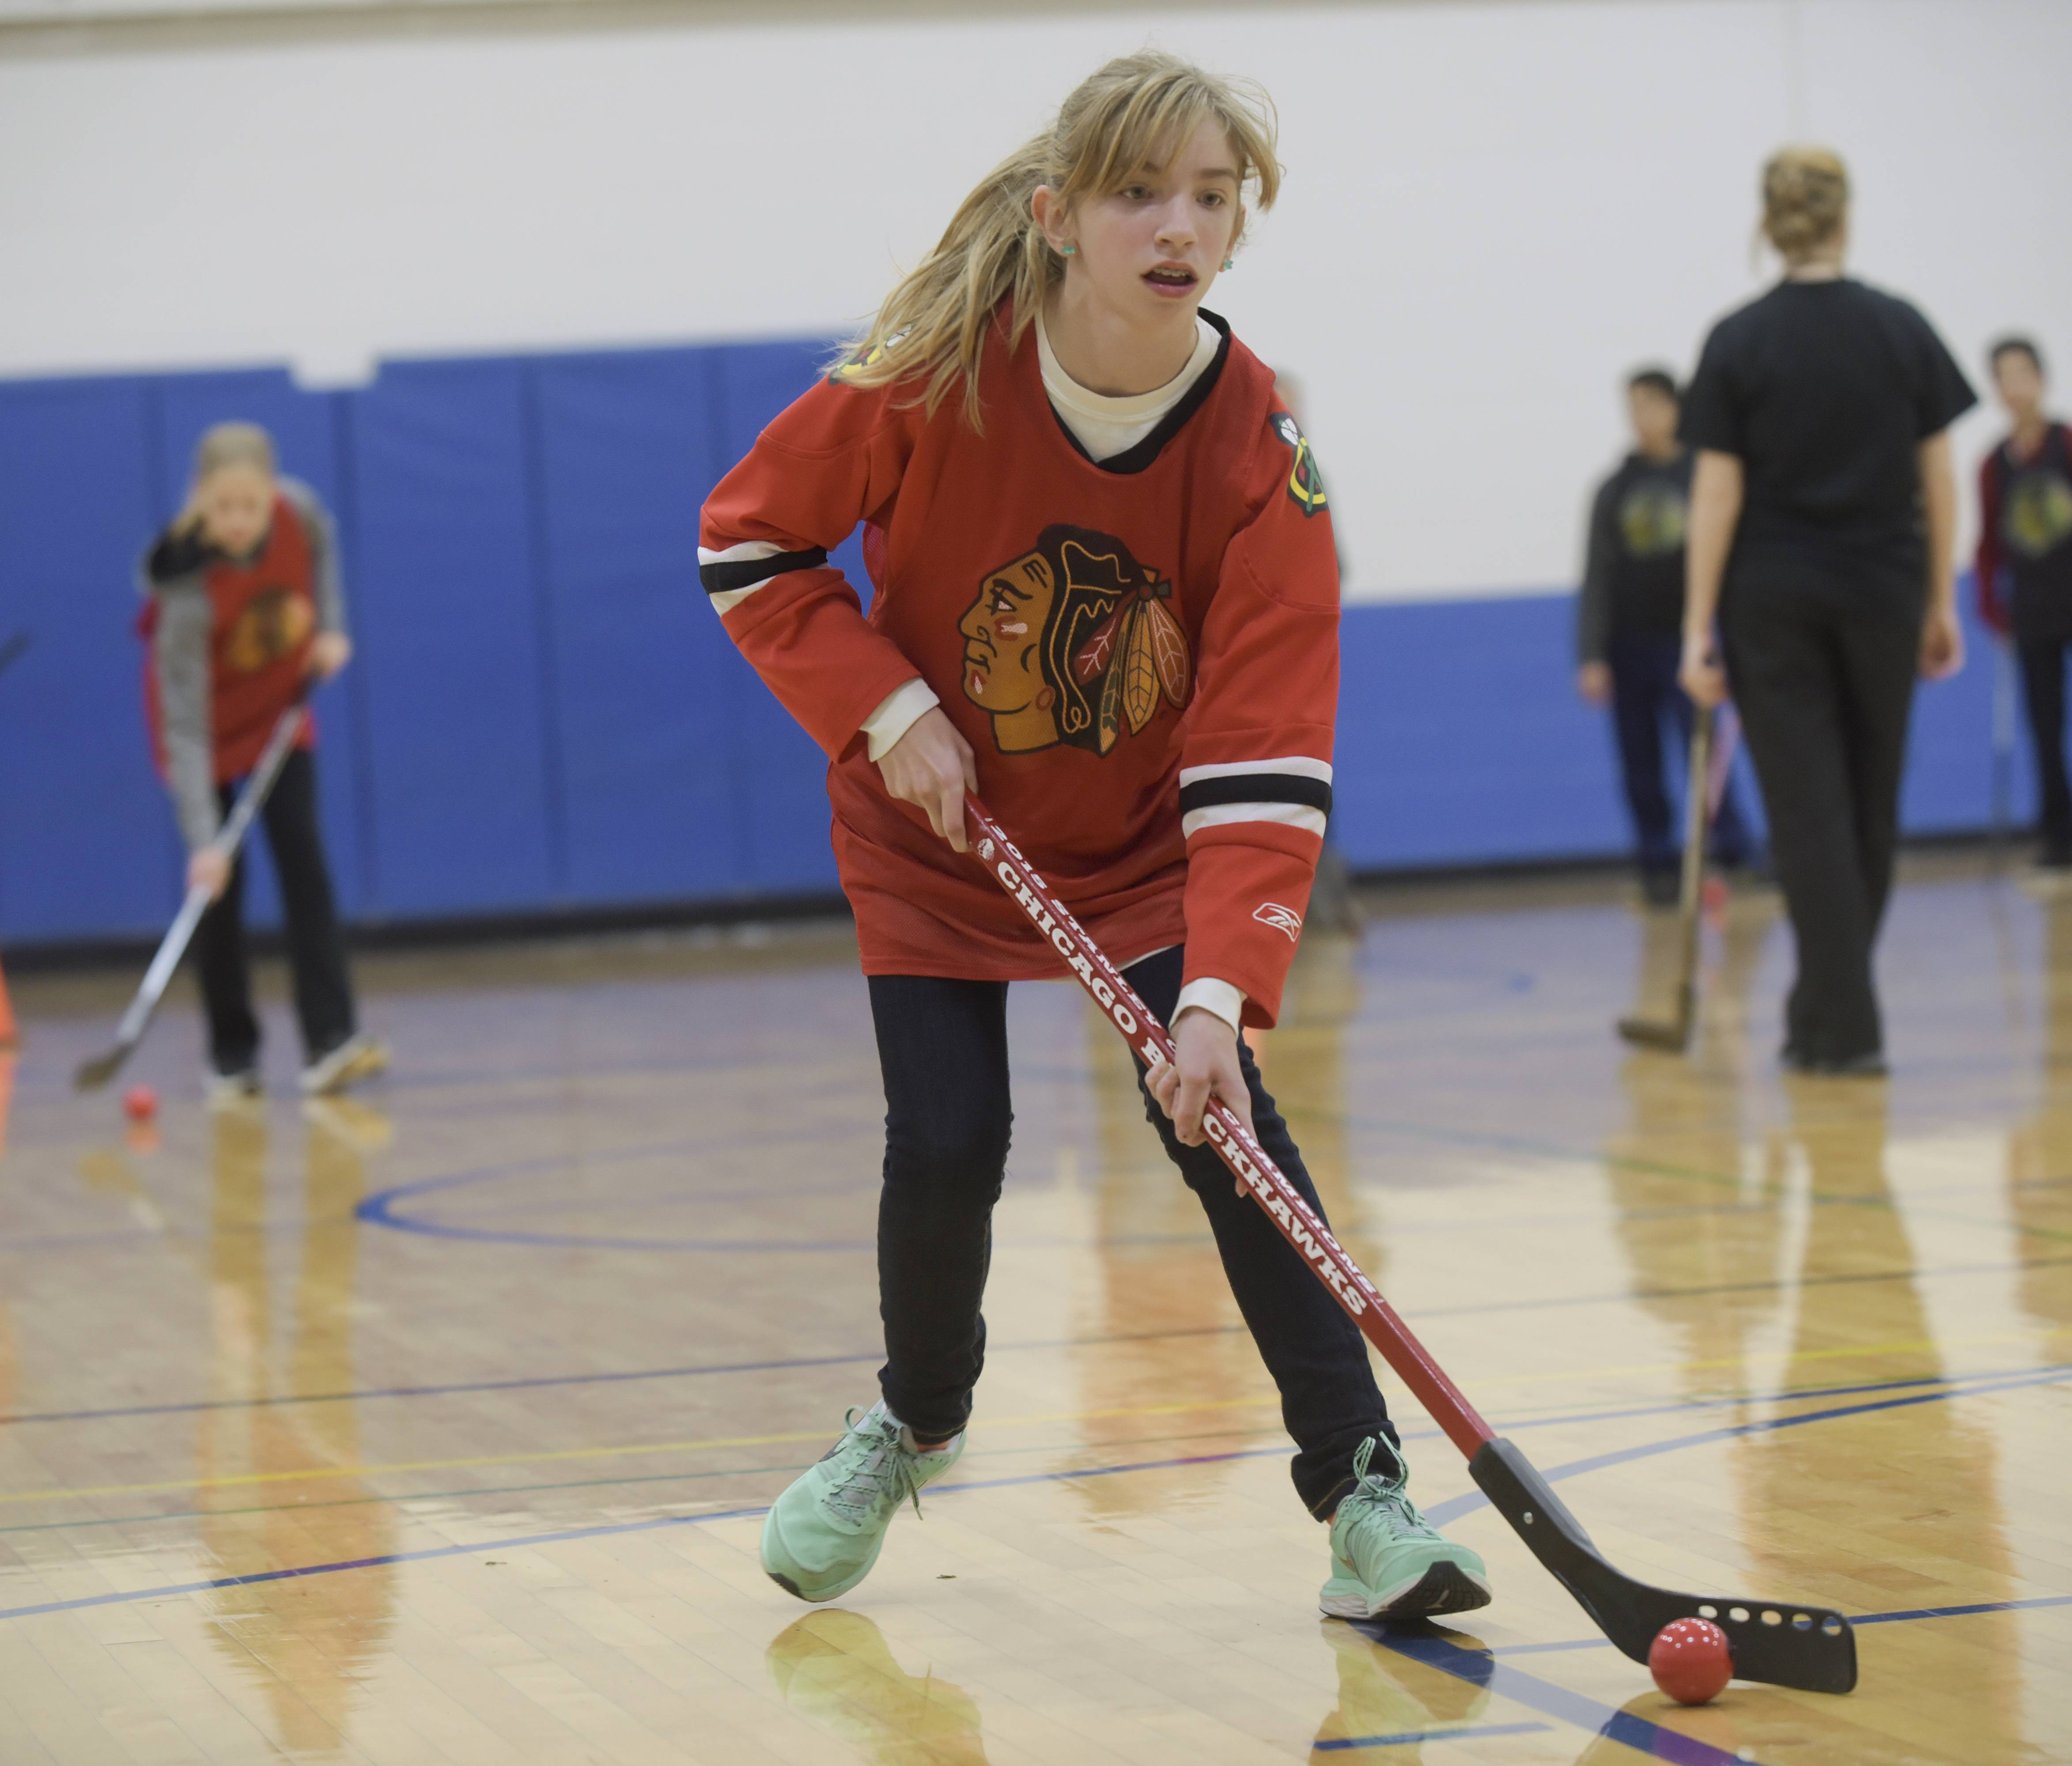 Amber Corrigan, 13, practices some hockey skills during a visit from the Chicago Blackhawks' fan development team Monday at Glenn Westlake Middle School in Lombard.